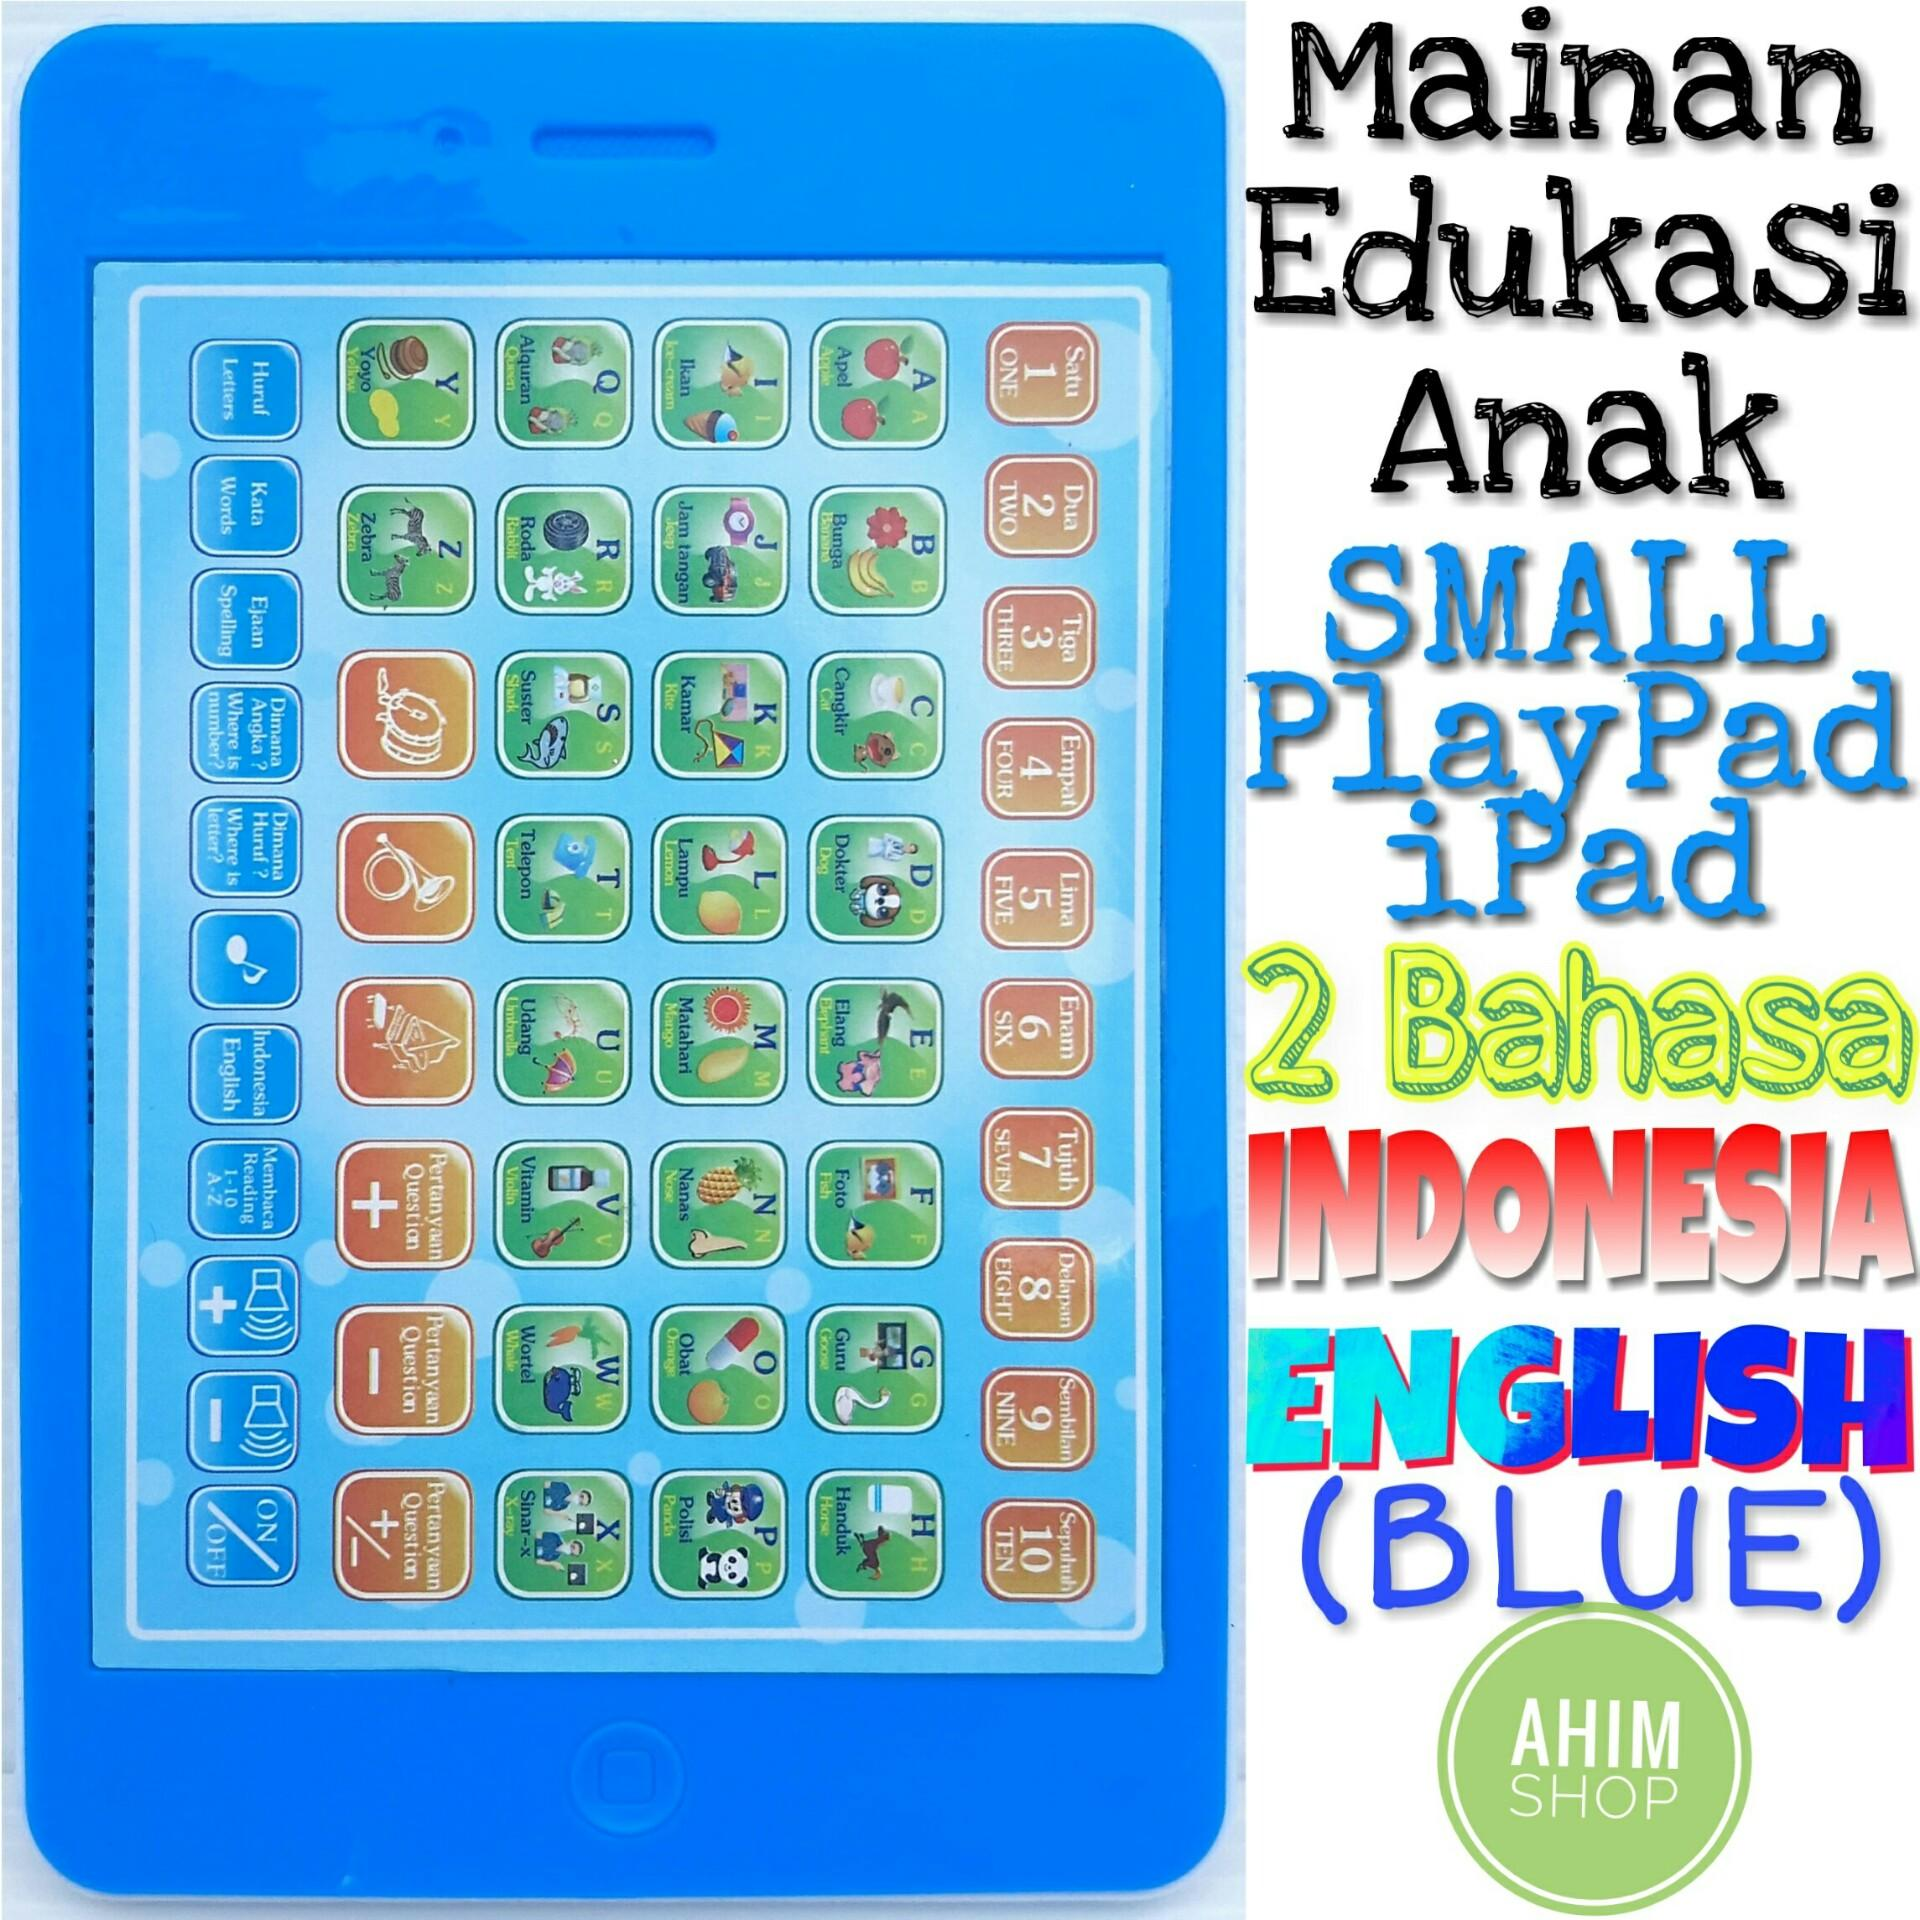 Blue Mainan Edukasi Anak 18 Fungsi SMALL PlayPad iPad 2 Bahasa Indonesia–